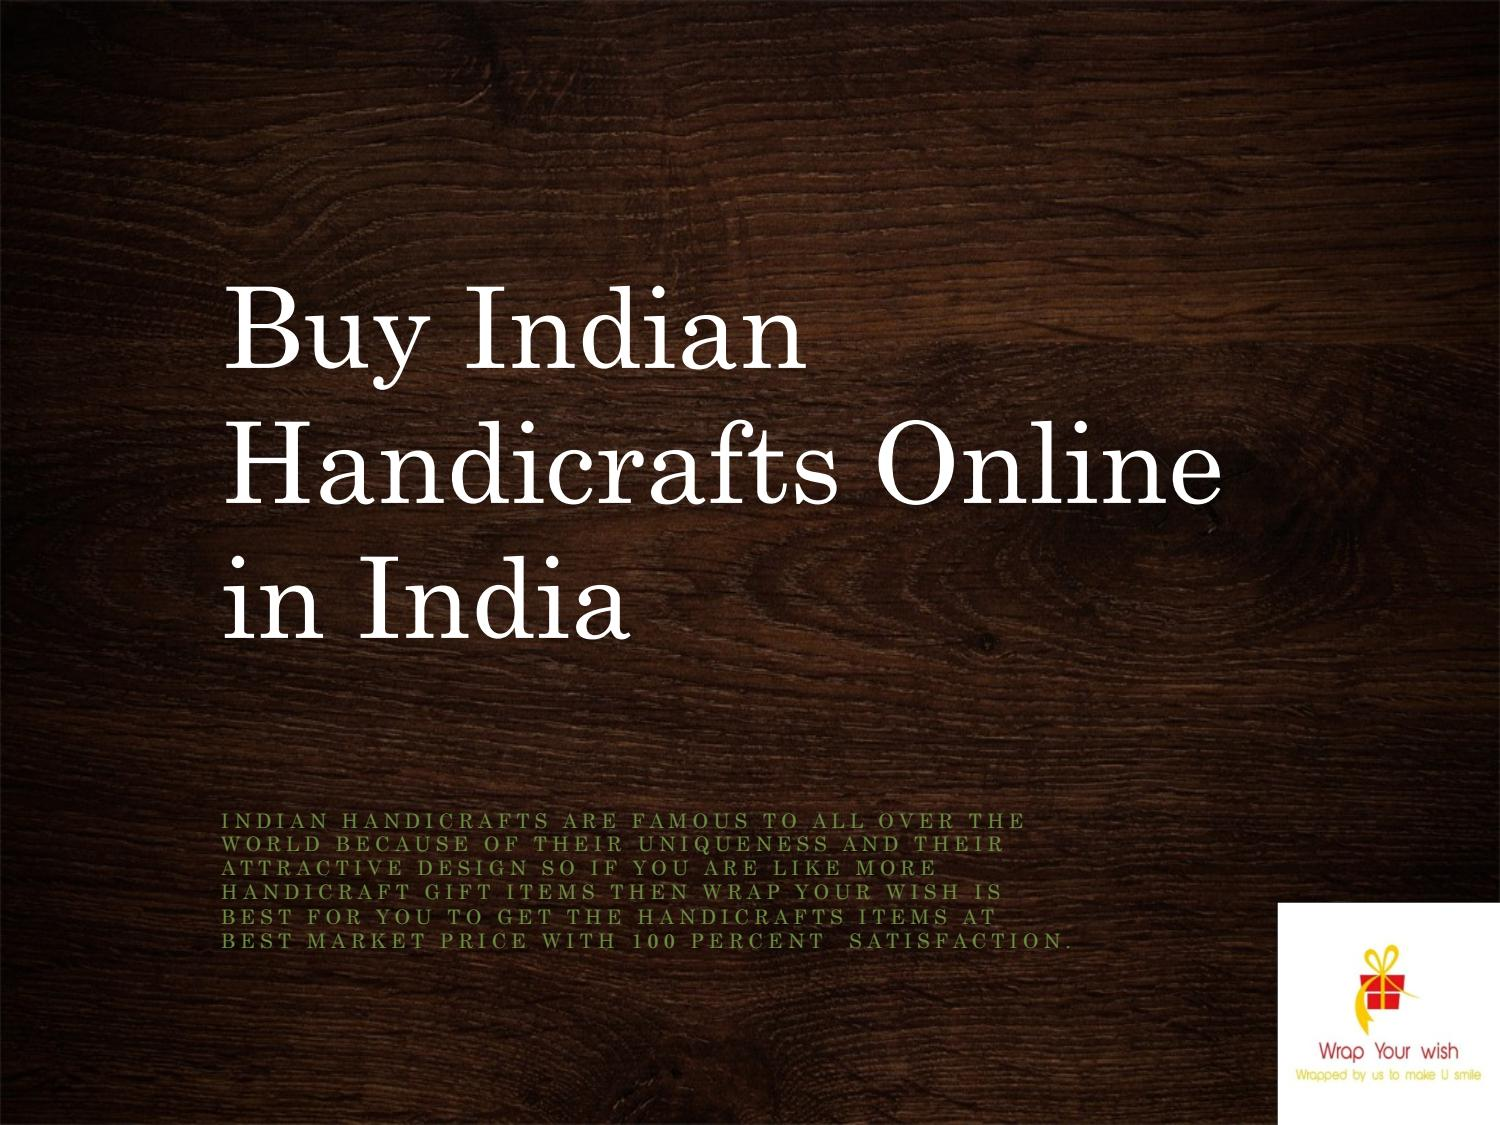 Buy Indian Handicrafts Online in India by wrapyourwishdl - issuu